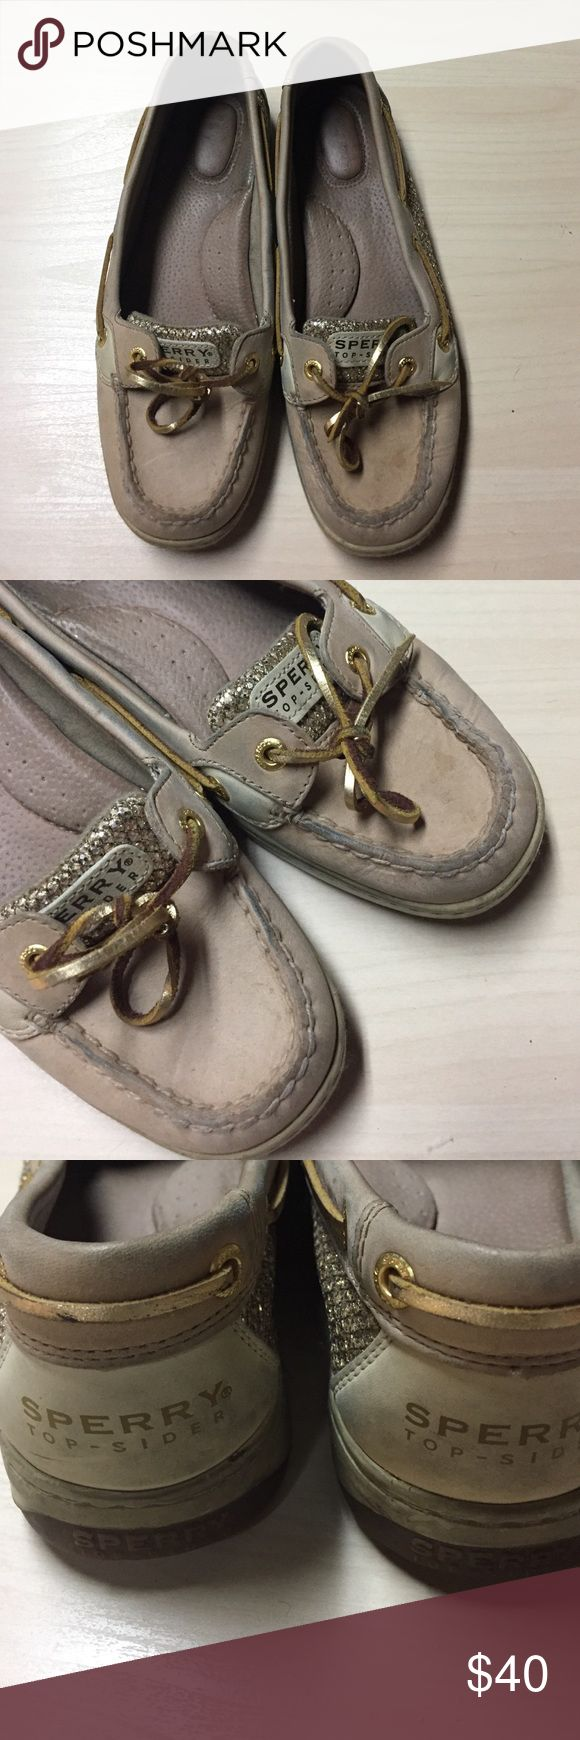 Sperry Boat Shoes - Gold Sparkle - 8.5 Sperry Boat Shoes - Gold Sparkle - 8.5 // gently worn, but need to be cleaned up a bit. Sperry Top-Sider Shoes Flats & Loafers